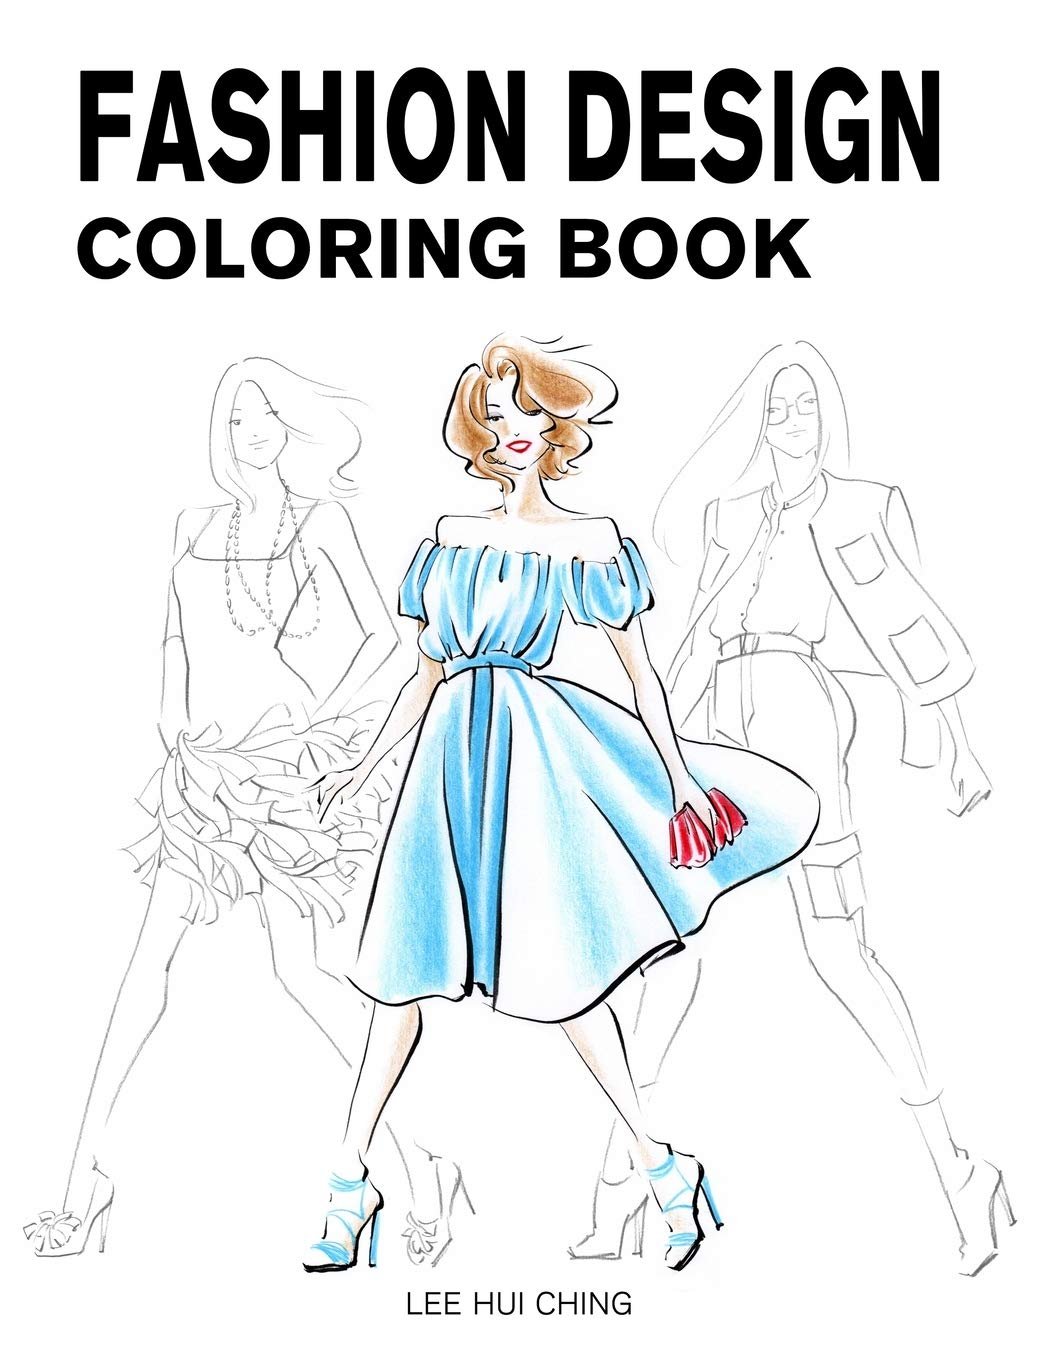 Fashion Design Coloring Book Female Figure Template Original Beautiful Fashion Sketches Created By Professional Fashion Illustrator For Easily Drawing Coloring And Stress Reliving Lee Hui Ching Derrick Lance Profashional Design